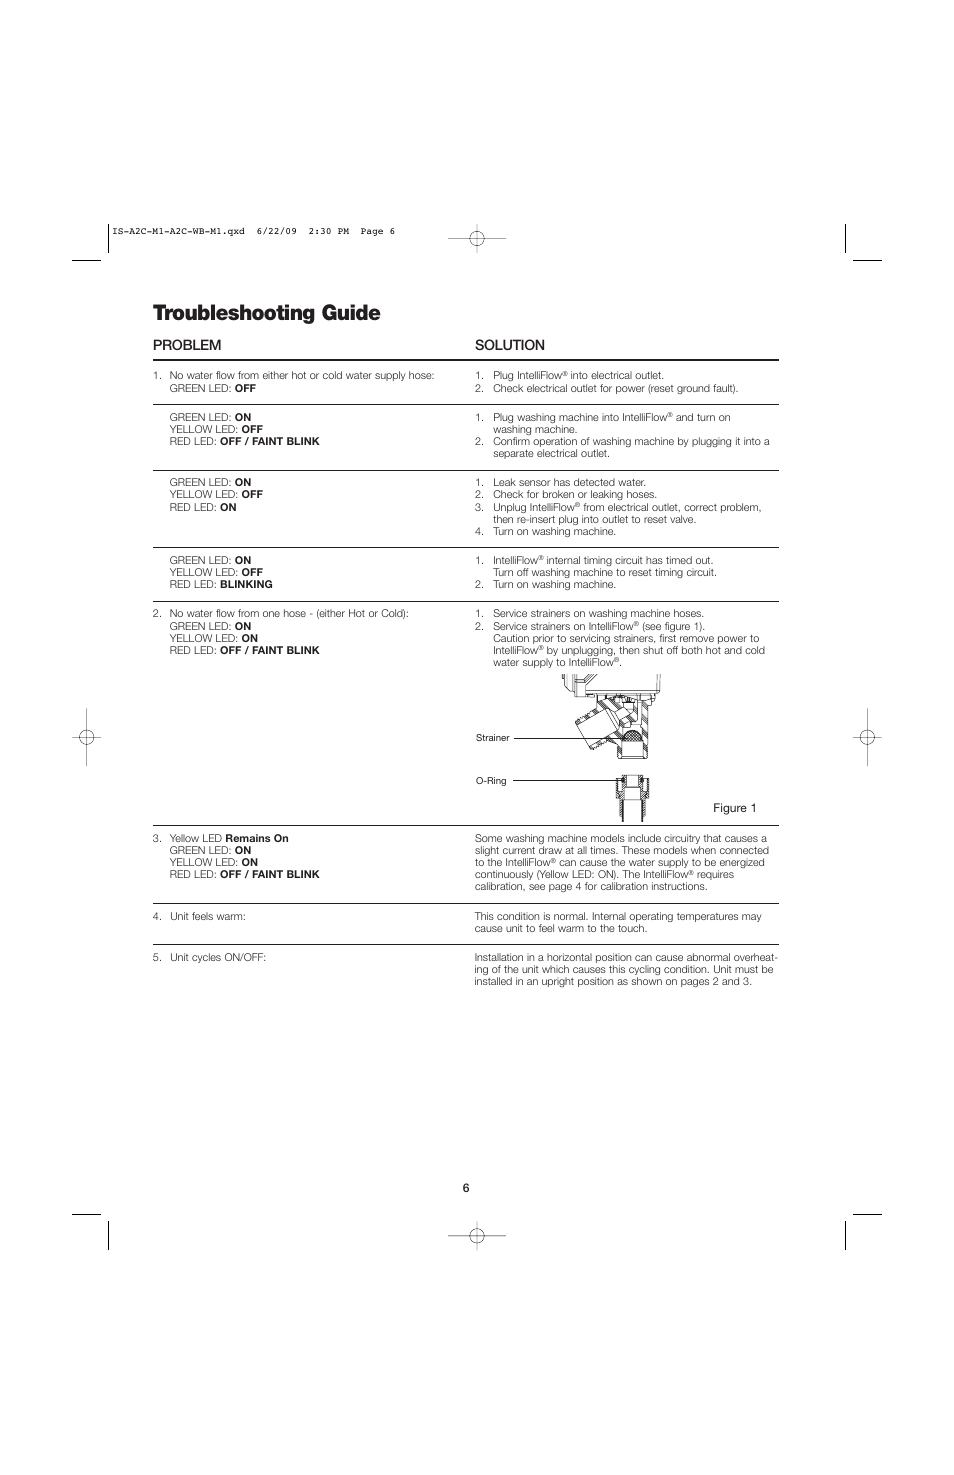 Troubleshooting guide, Problem solution | Watts A2C-WB User